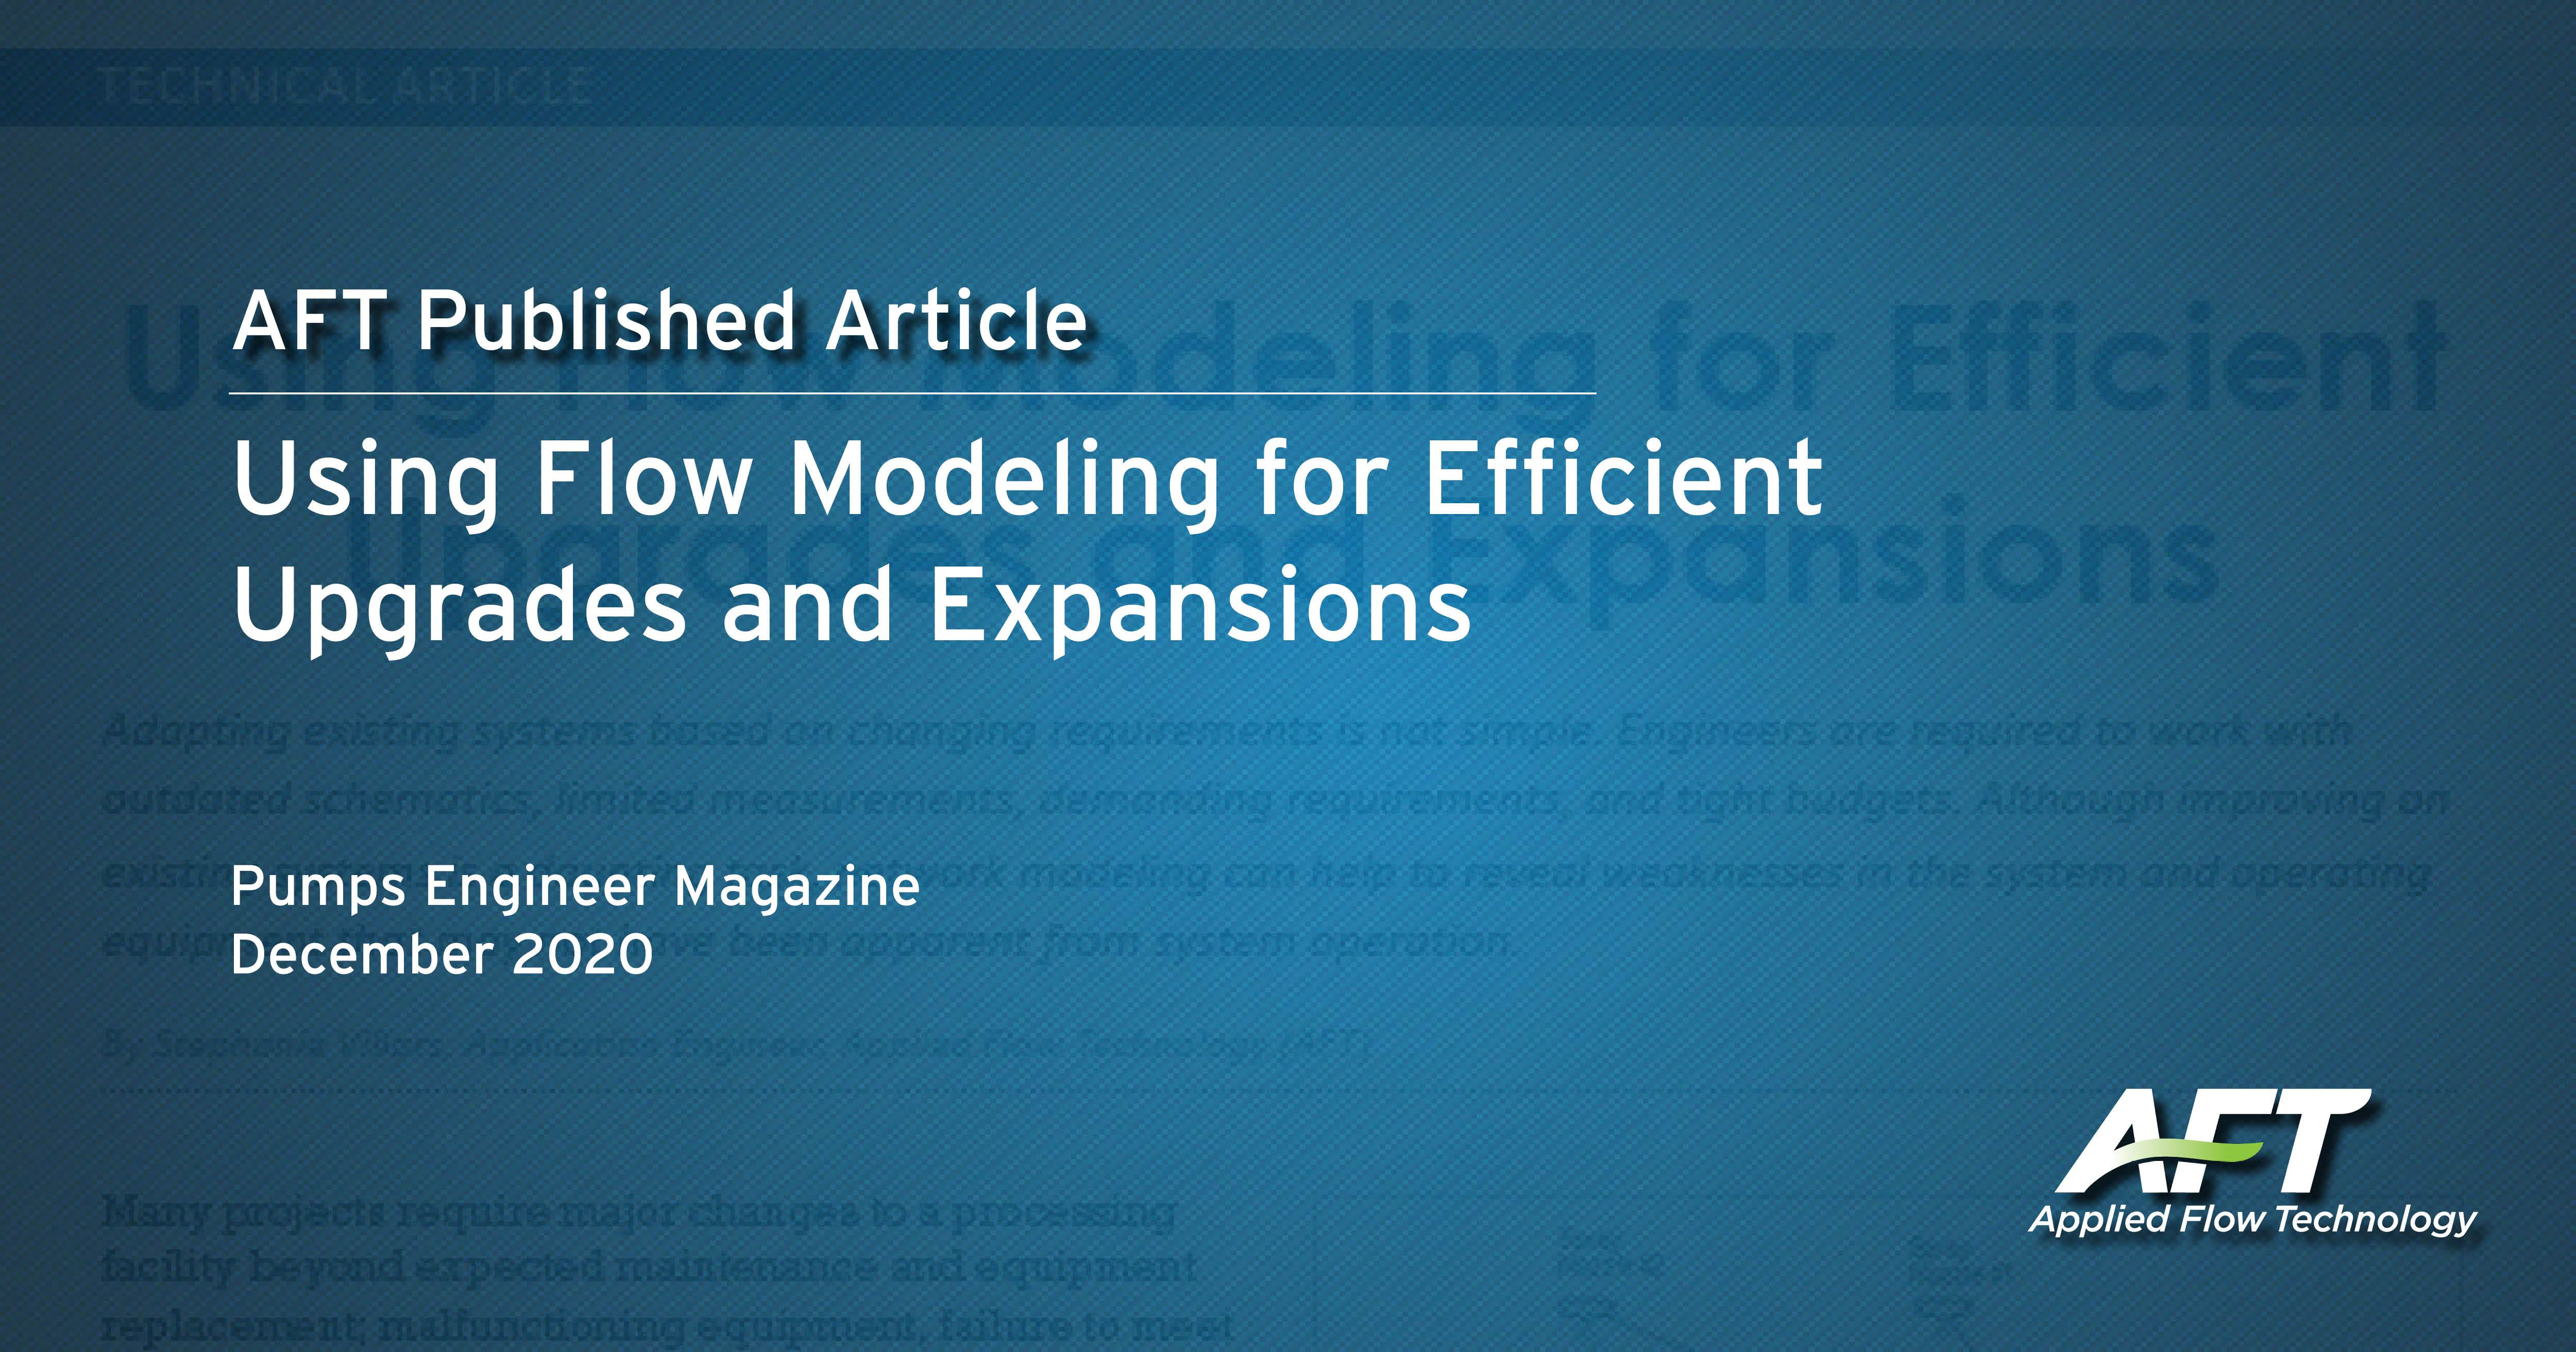 Using Flow Modeling for Efficient Upgrades and Expansions